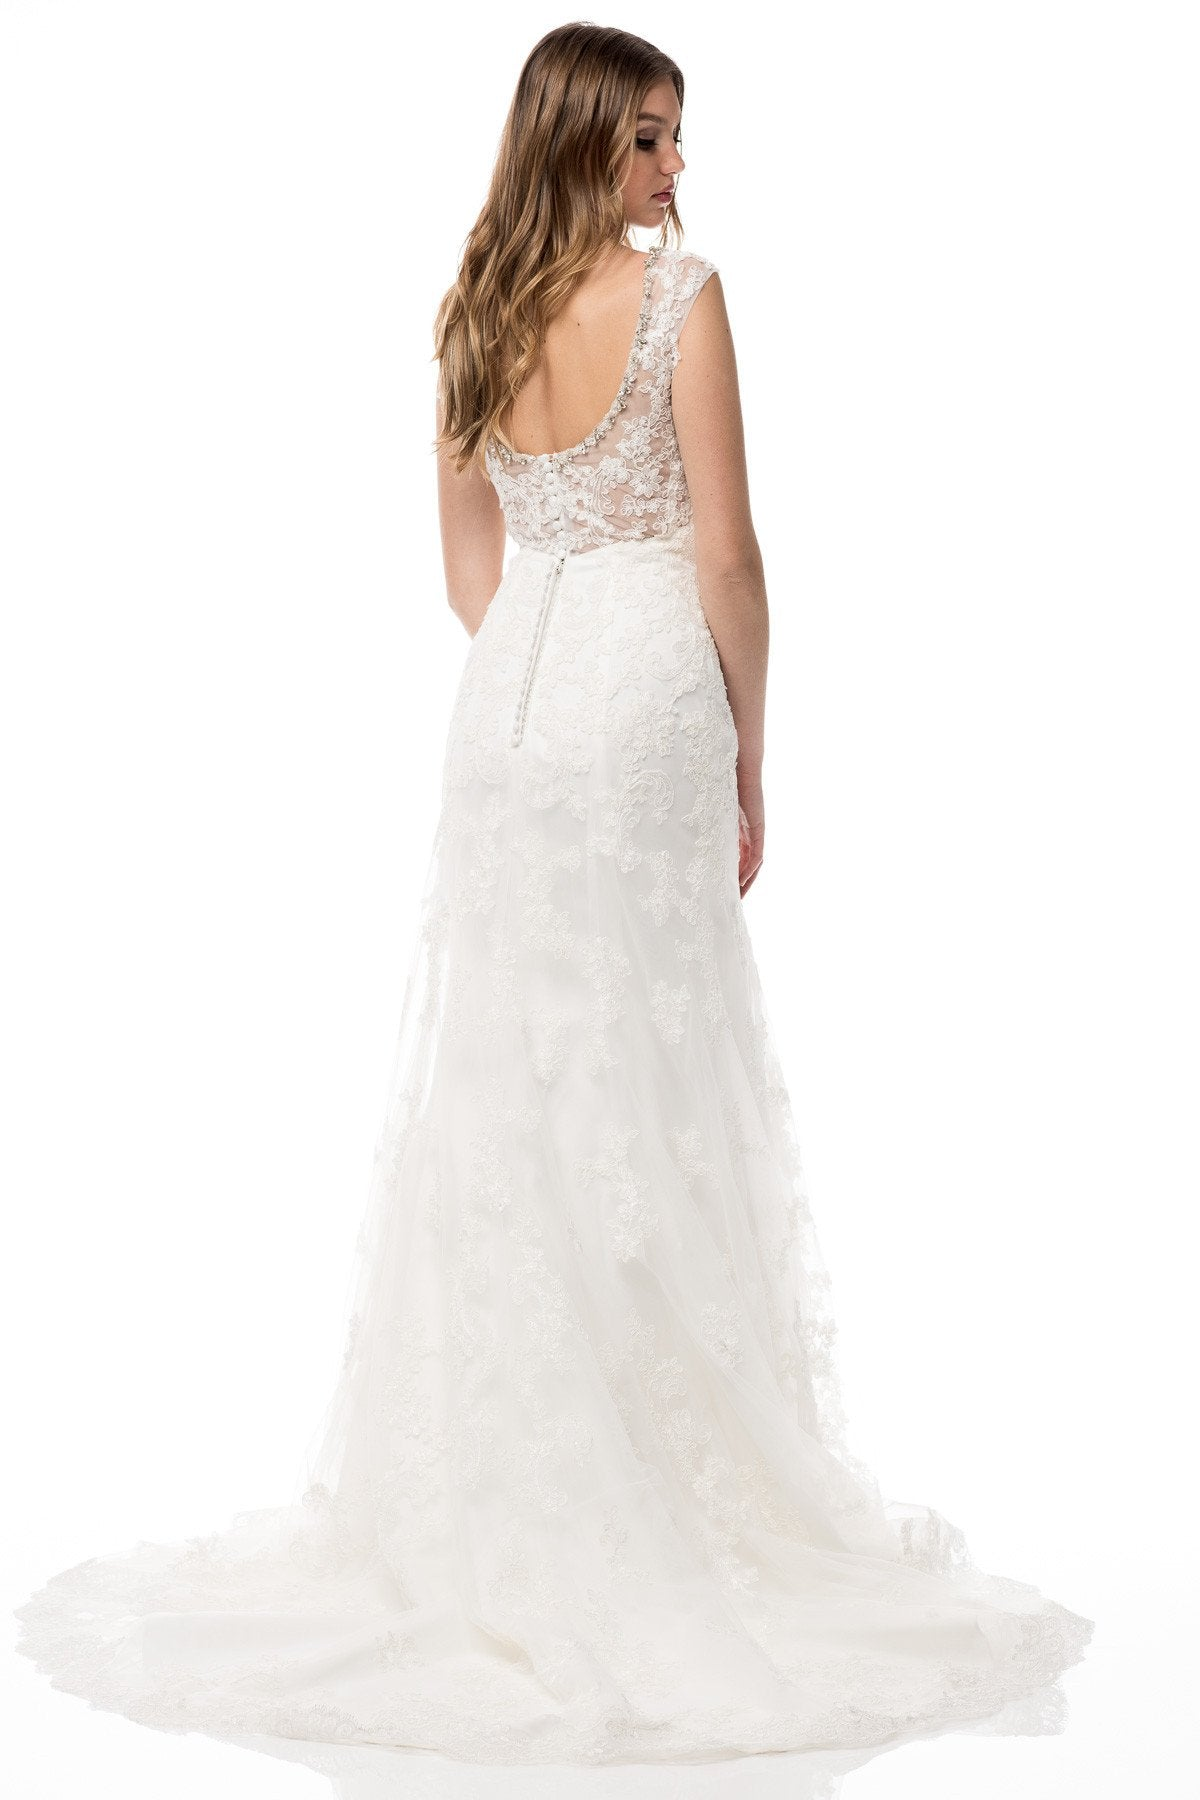 HCW062 Beaded and Lace Mermaid Gown